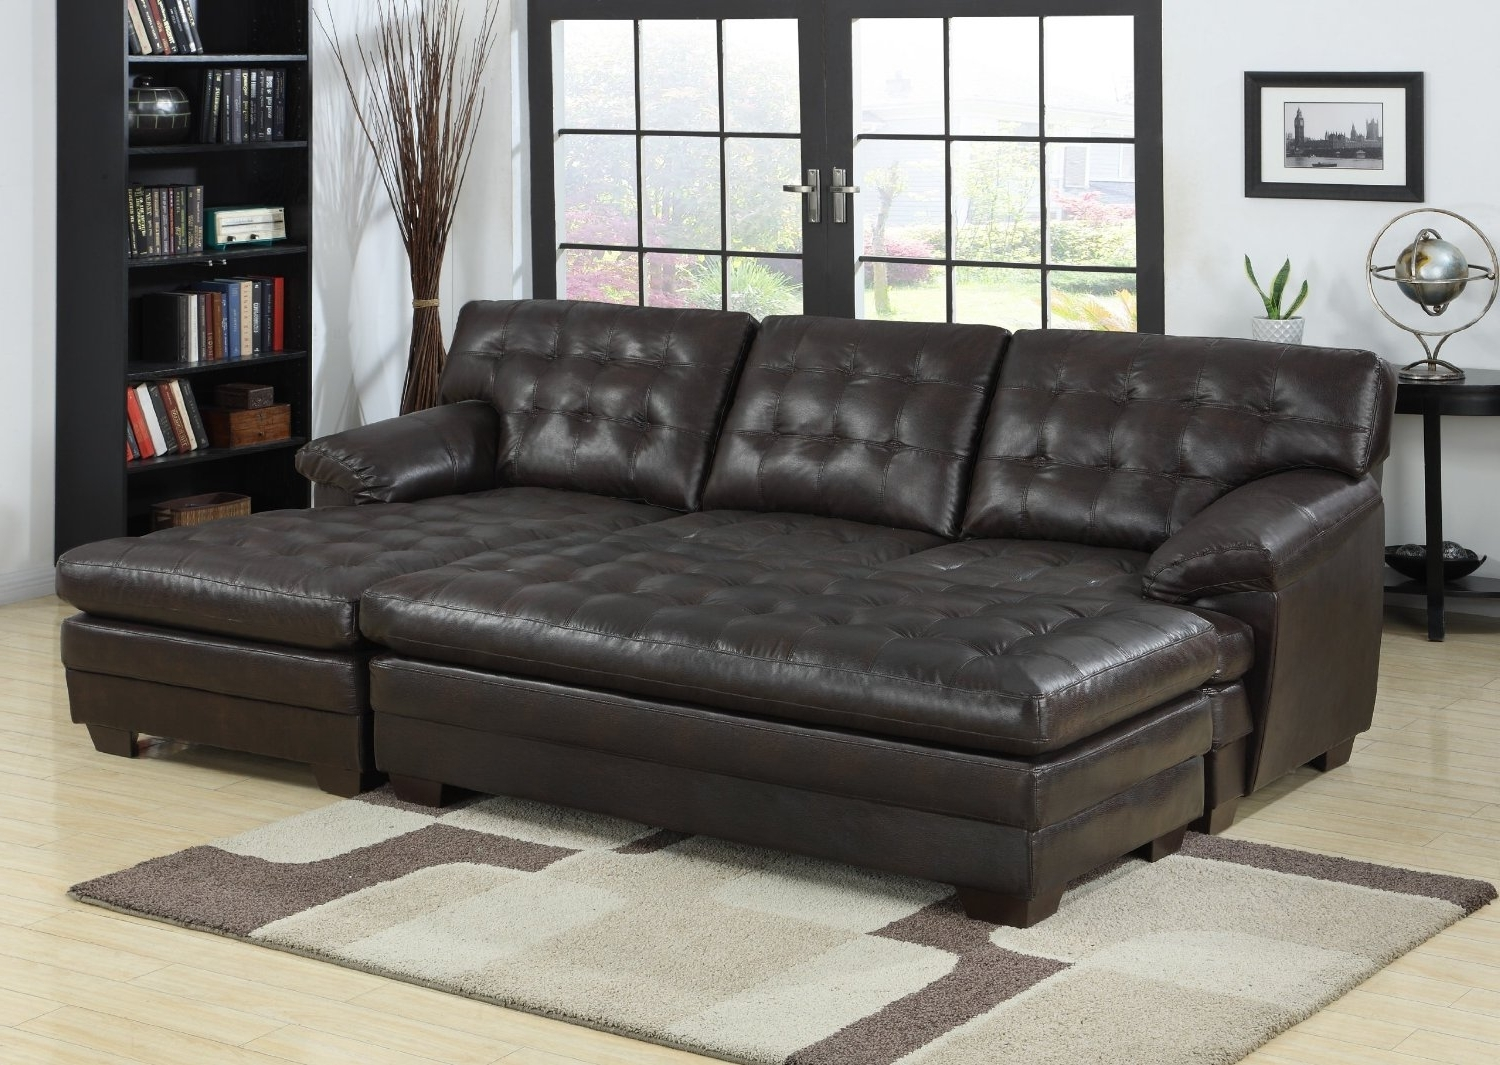 Most Current Oversized Chaise Lounge Sofas Regarding Double Chaise Lounge Sofa Image Gallery — The Home Redesign : The (View 2 of 15)